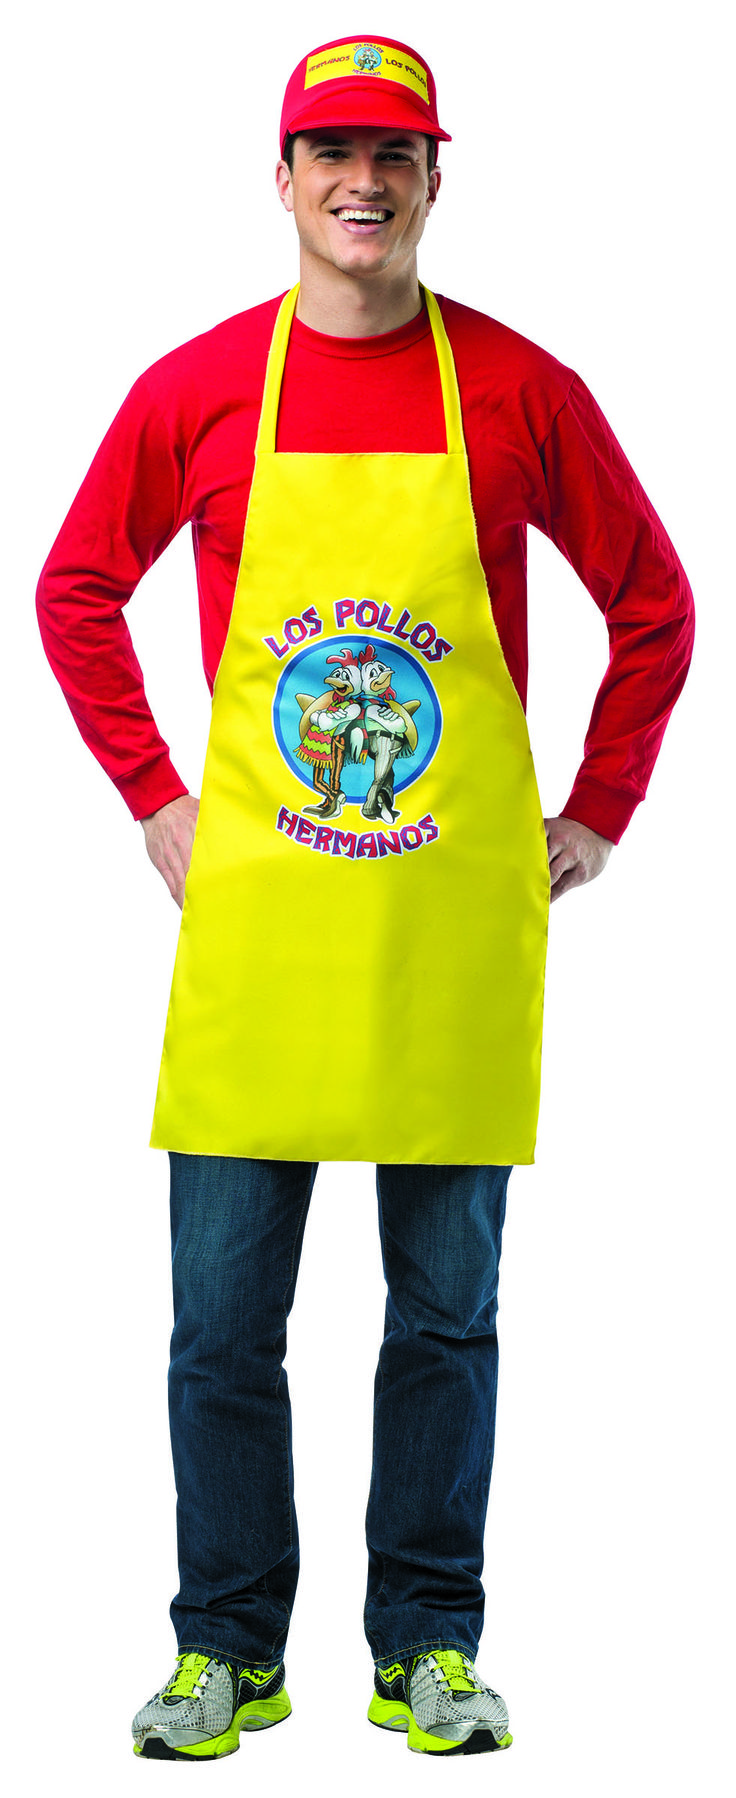 #4718 Breaking Bad Apron and Visor - Let's Cook! Don't forget your yellow Los Pollos Hermanos Apron from AMC's hit television series, Breaking Bad!   This officially licensed costume includes an apron and visor.  #breakingbad #halloween #apron #visor